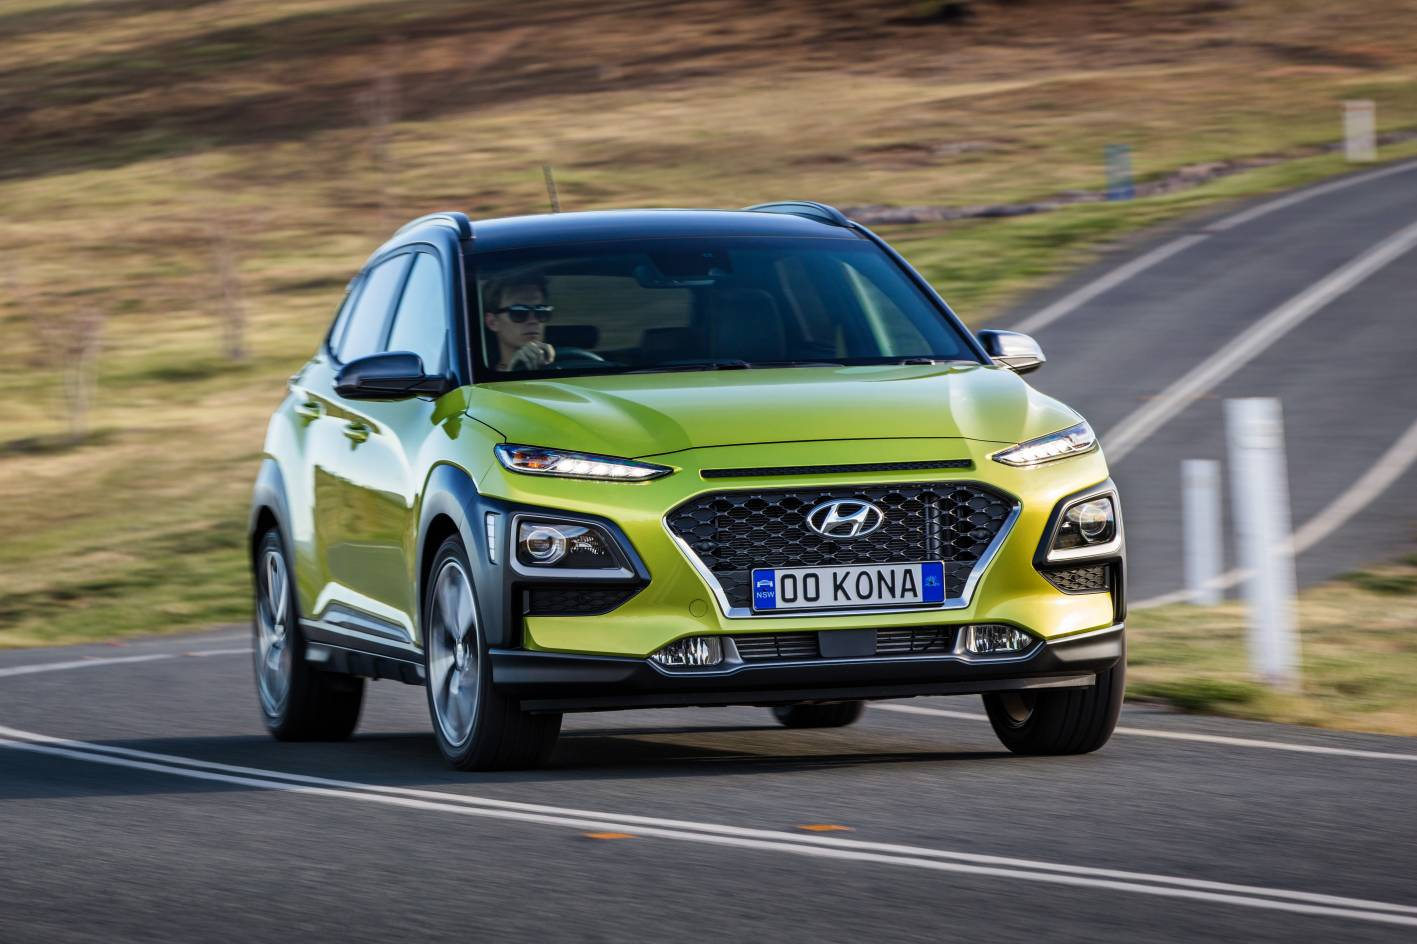 2018 Mustang Wheel Choices >> 2018 Hyundai Kona Highlander Review | Practical Motoring